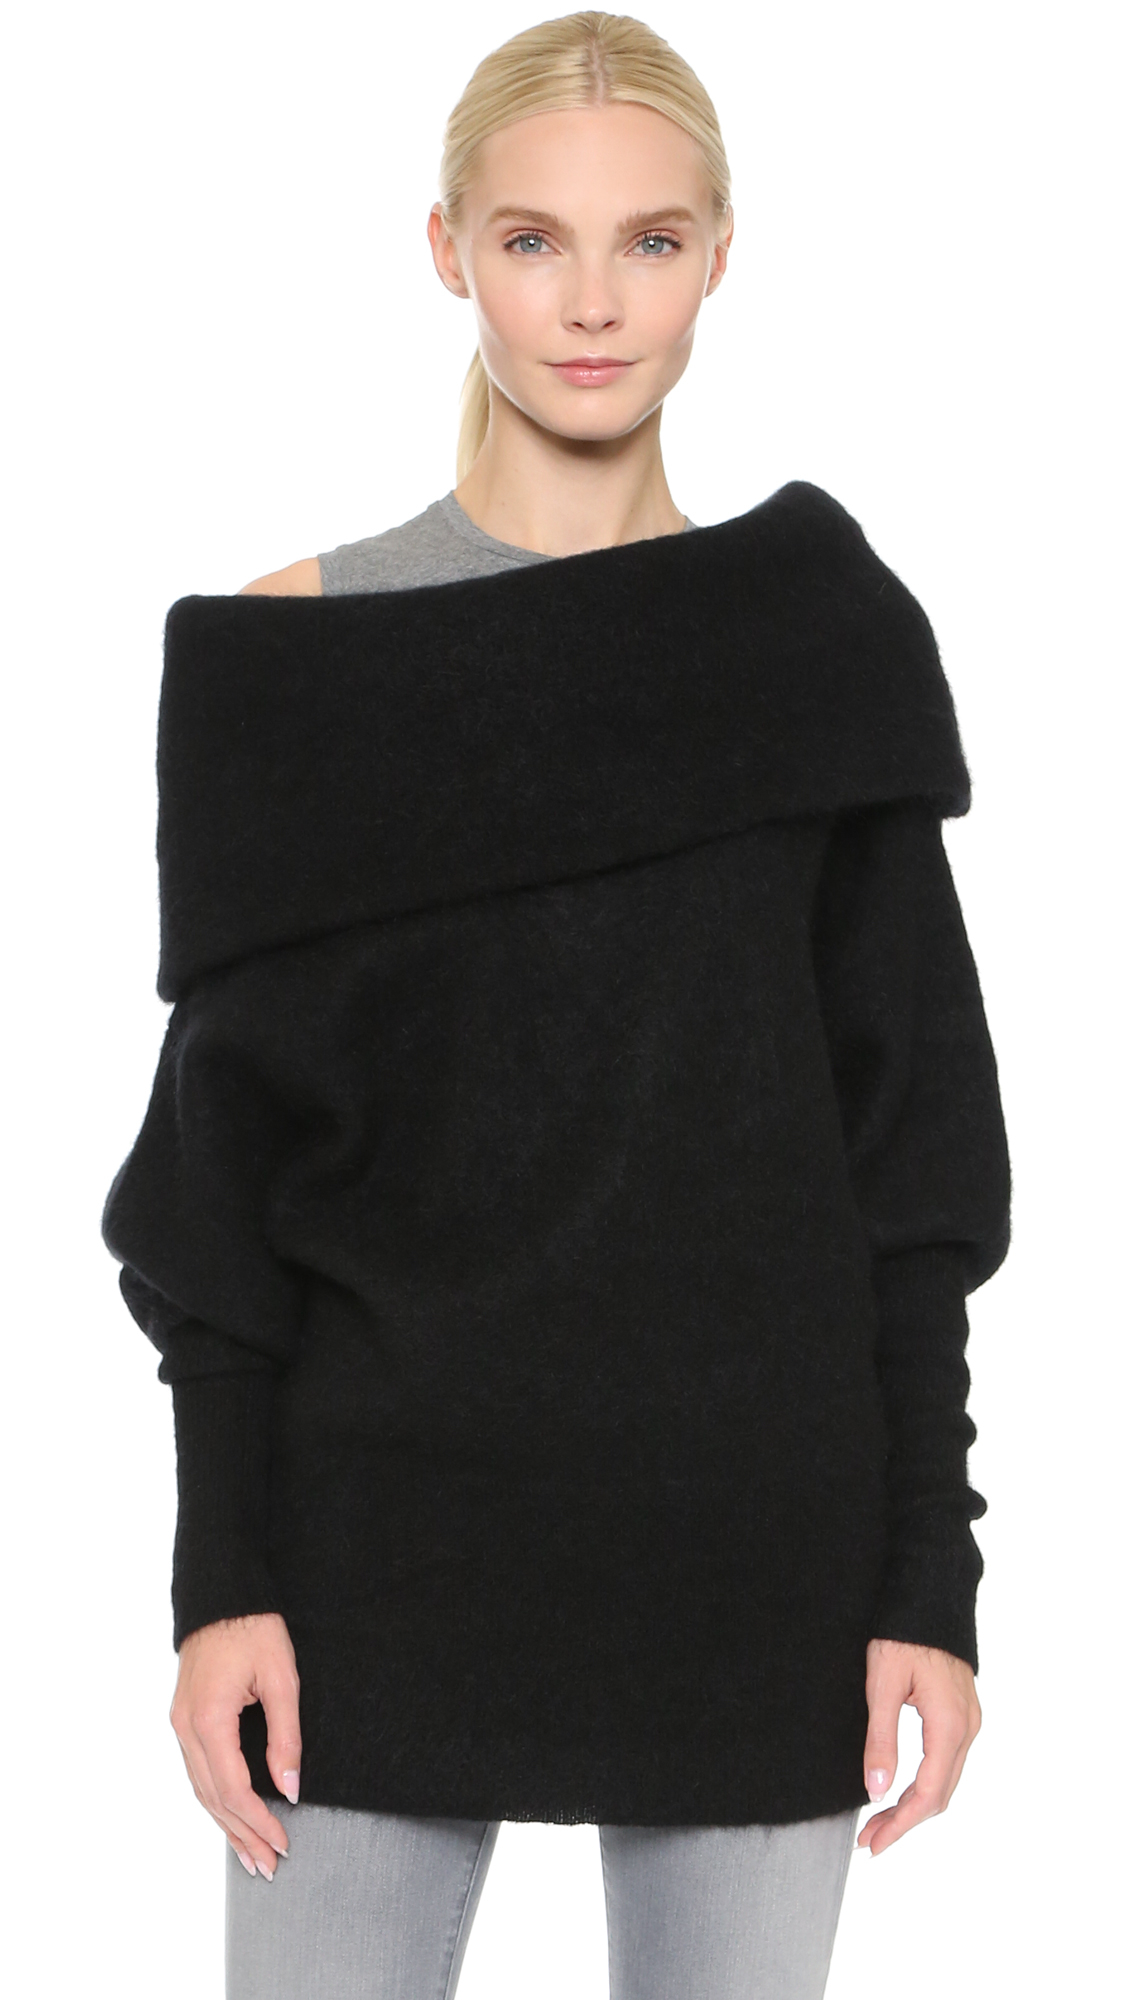 lyst acne studios daze mohair sweater dark grey melange in black. Black Bedroom Furniture Sets. Home Design Ideas